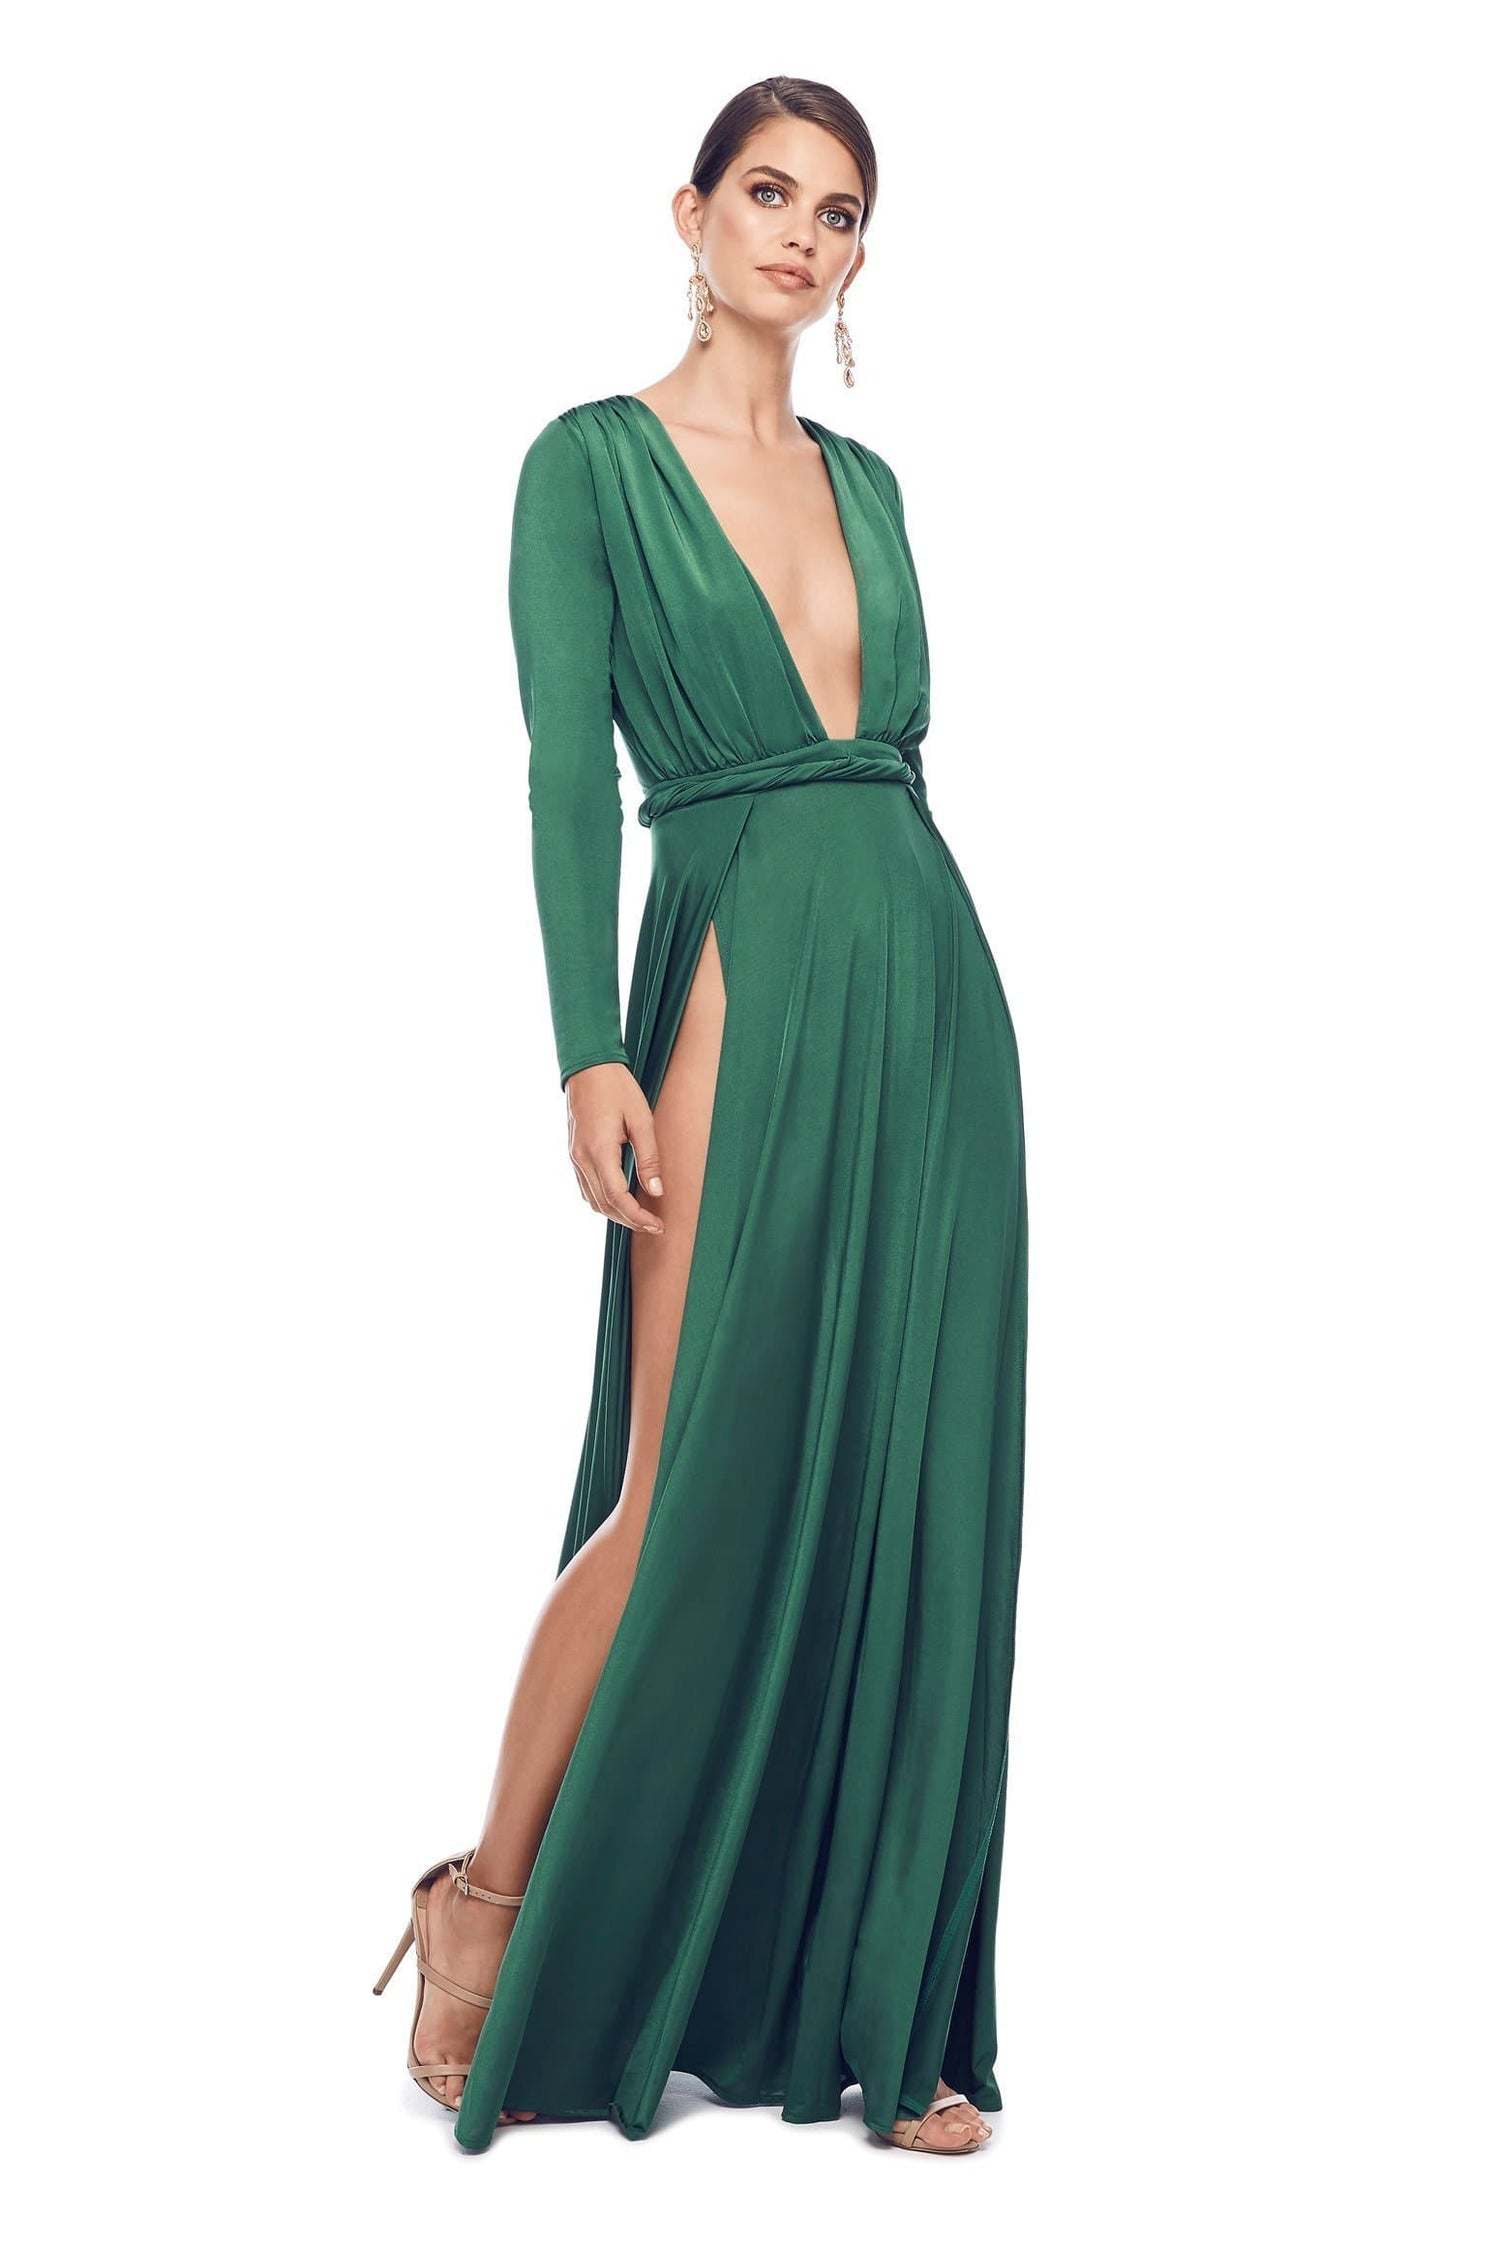 Sahara - Emerald Jersey Gown with Long Sleeves & Deep Plunge Neckline